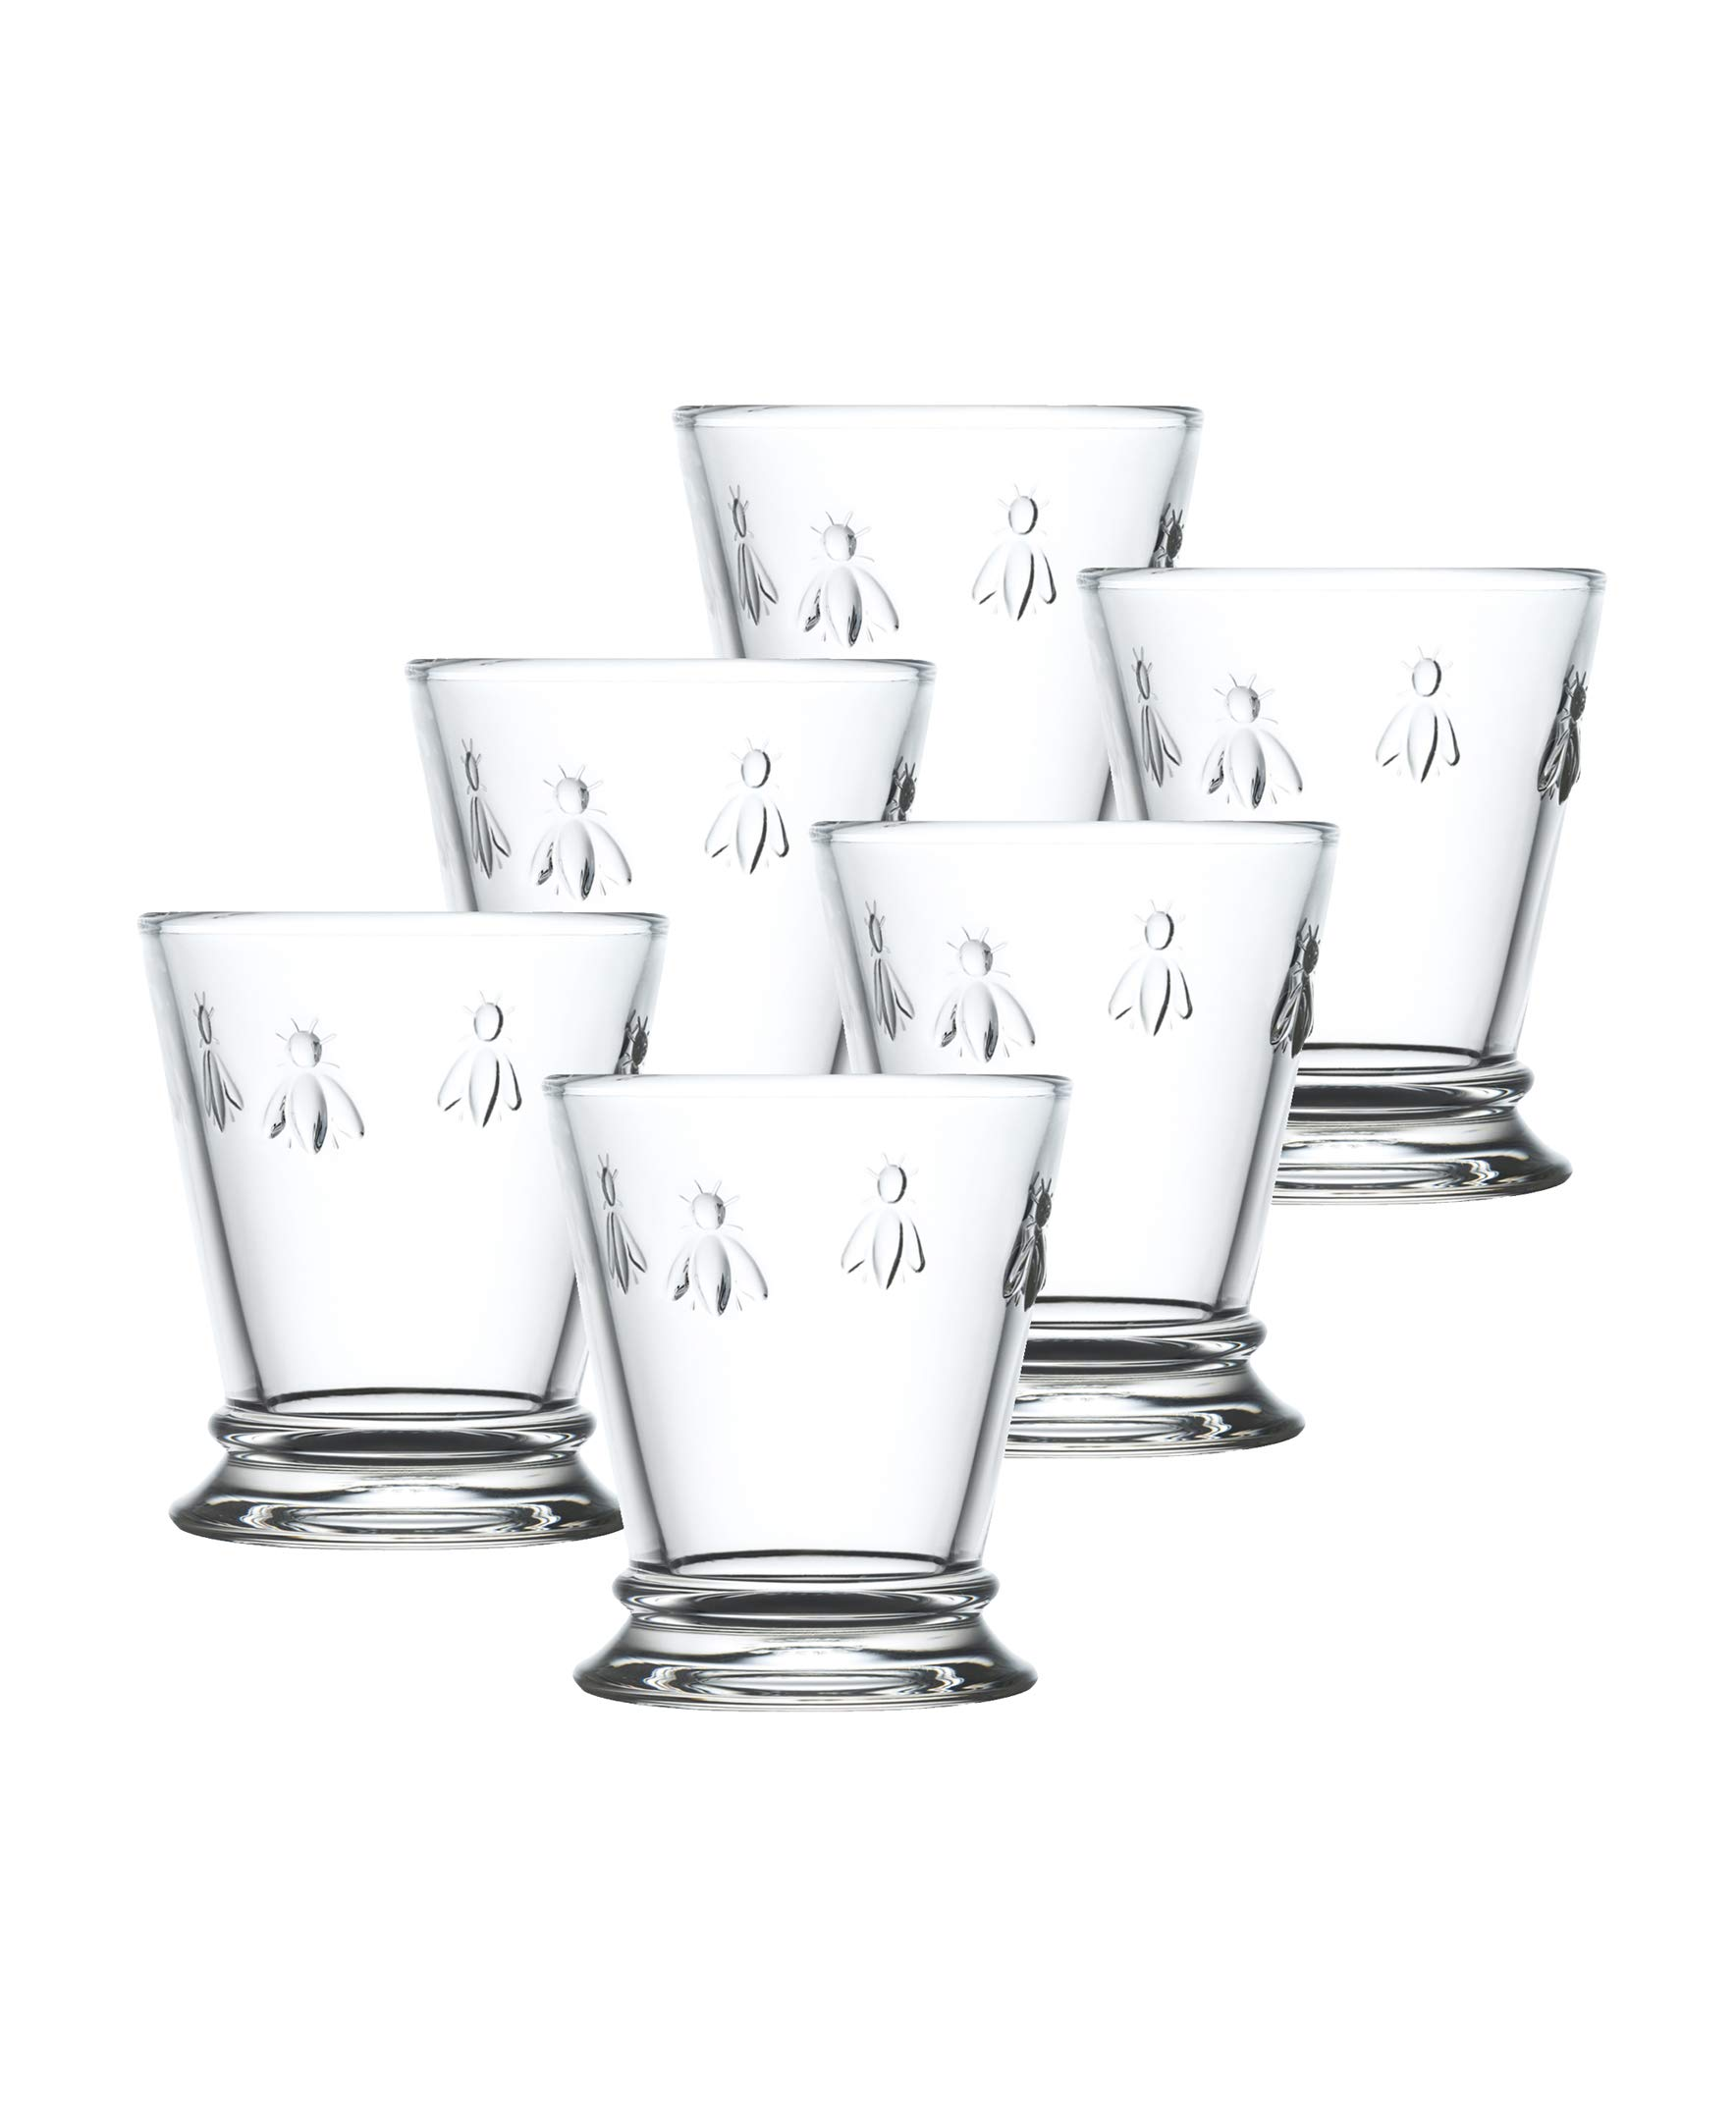 La Rochere Set Of 6,10-ounce Napoleon Bee Tumblers, Clear by La Rochere